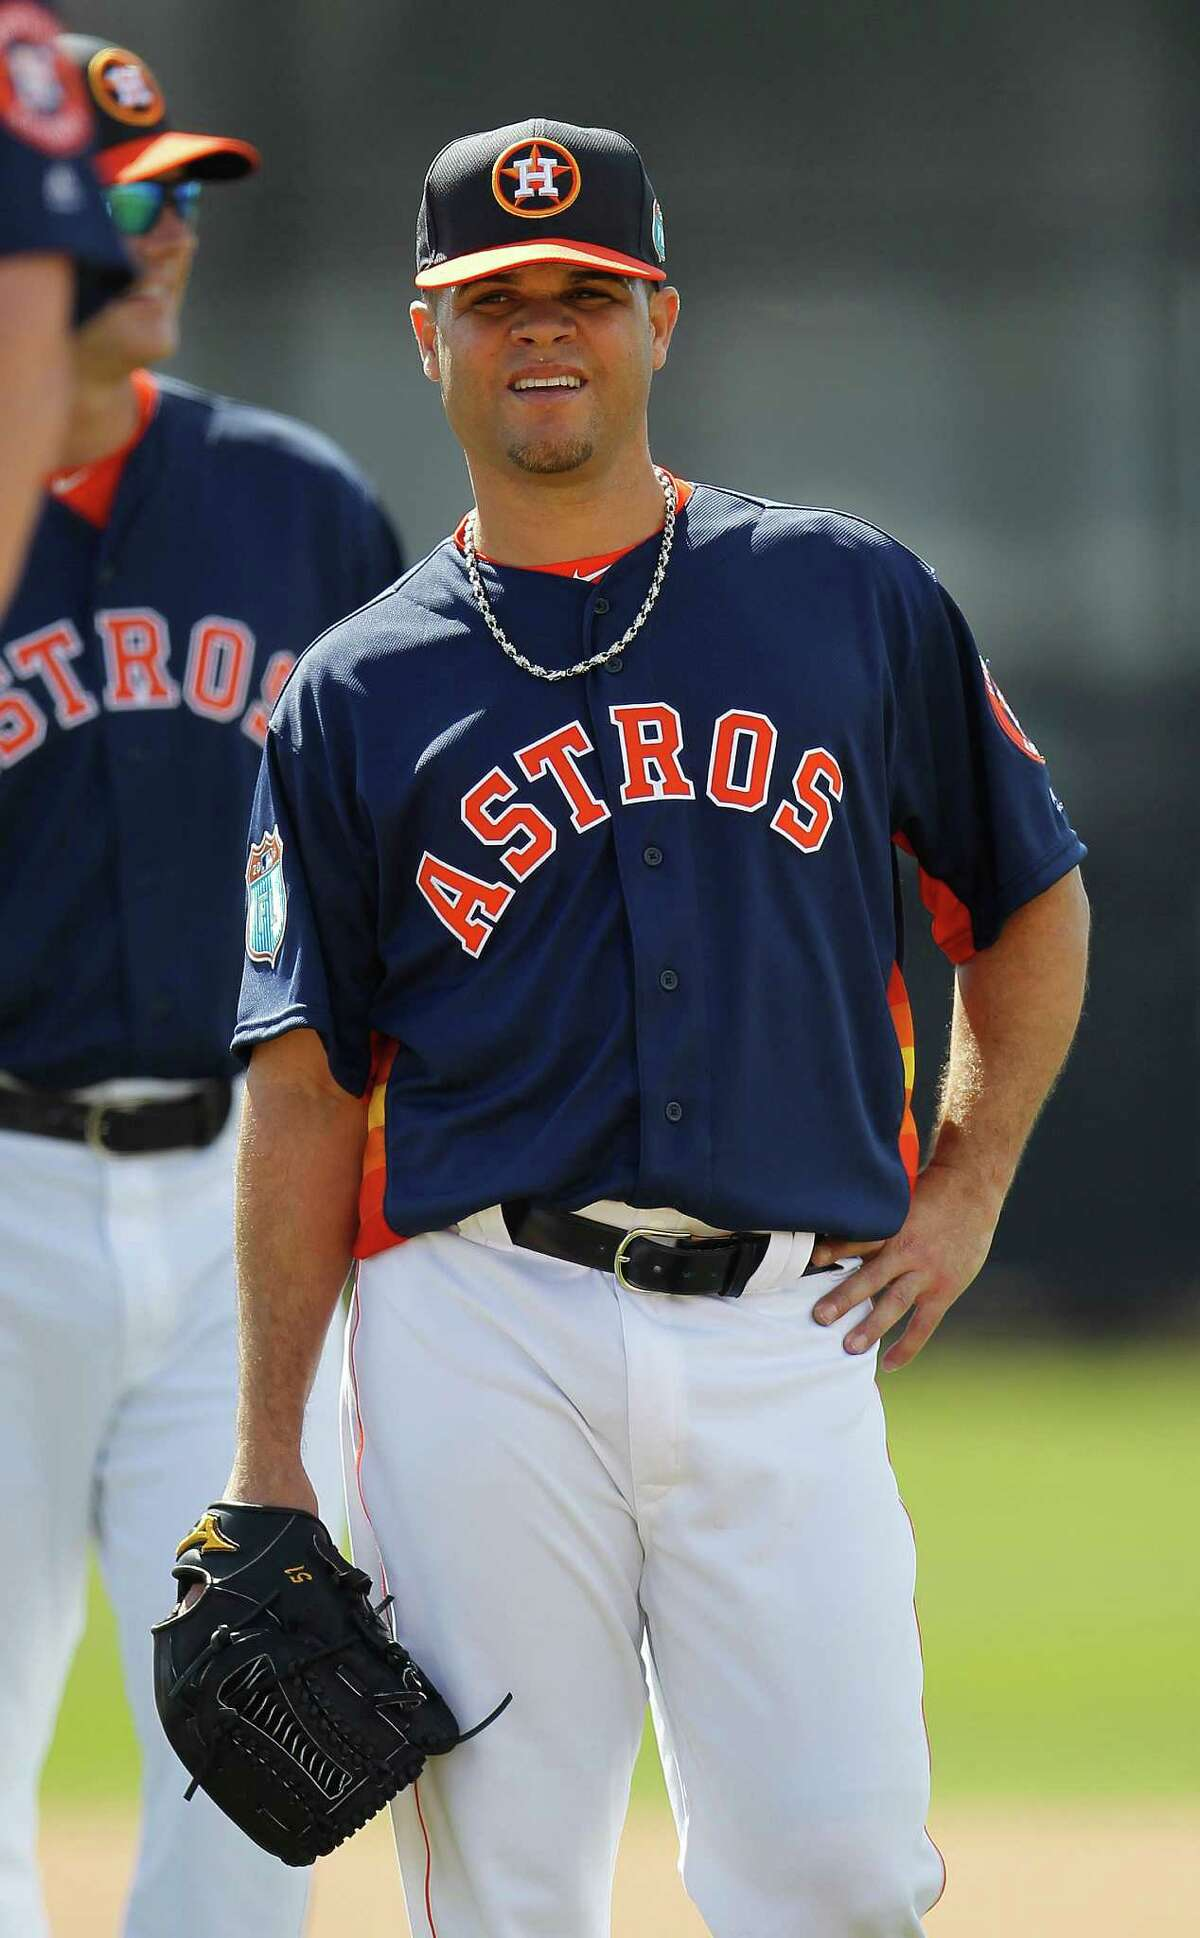 Wandy Rodriguez will get the call to start the Astros' final spring home opener in Kissimmee.